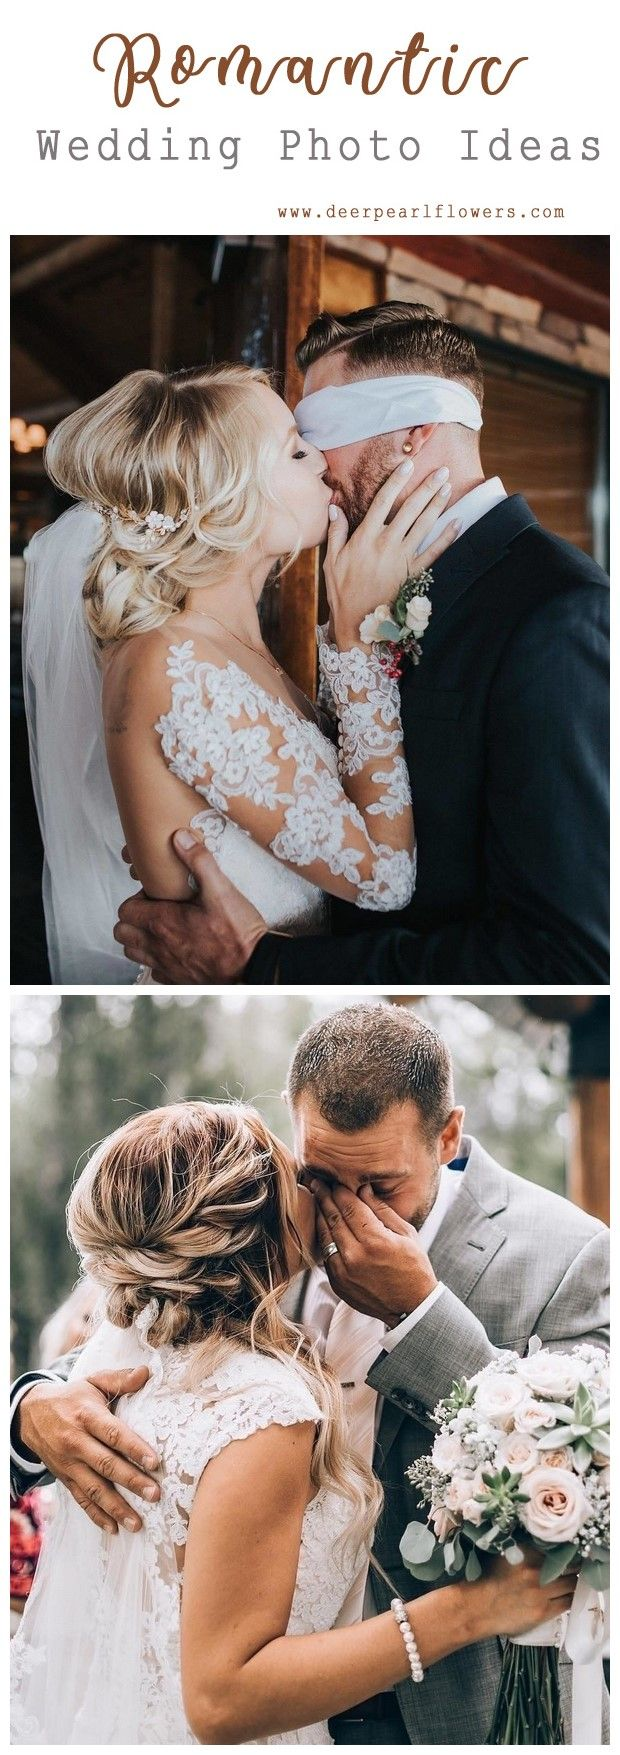 20 Must Have Wedding Photo Ideas You'll Love